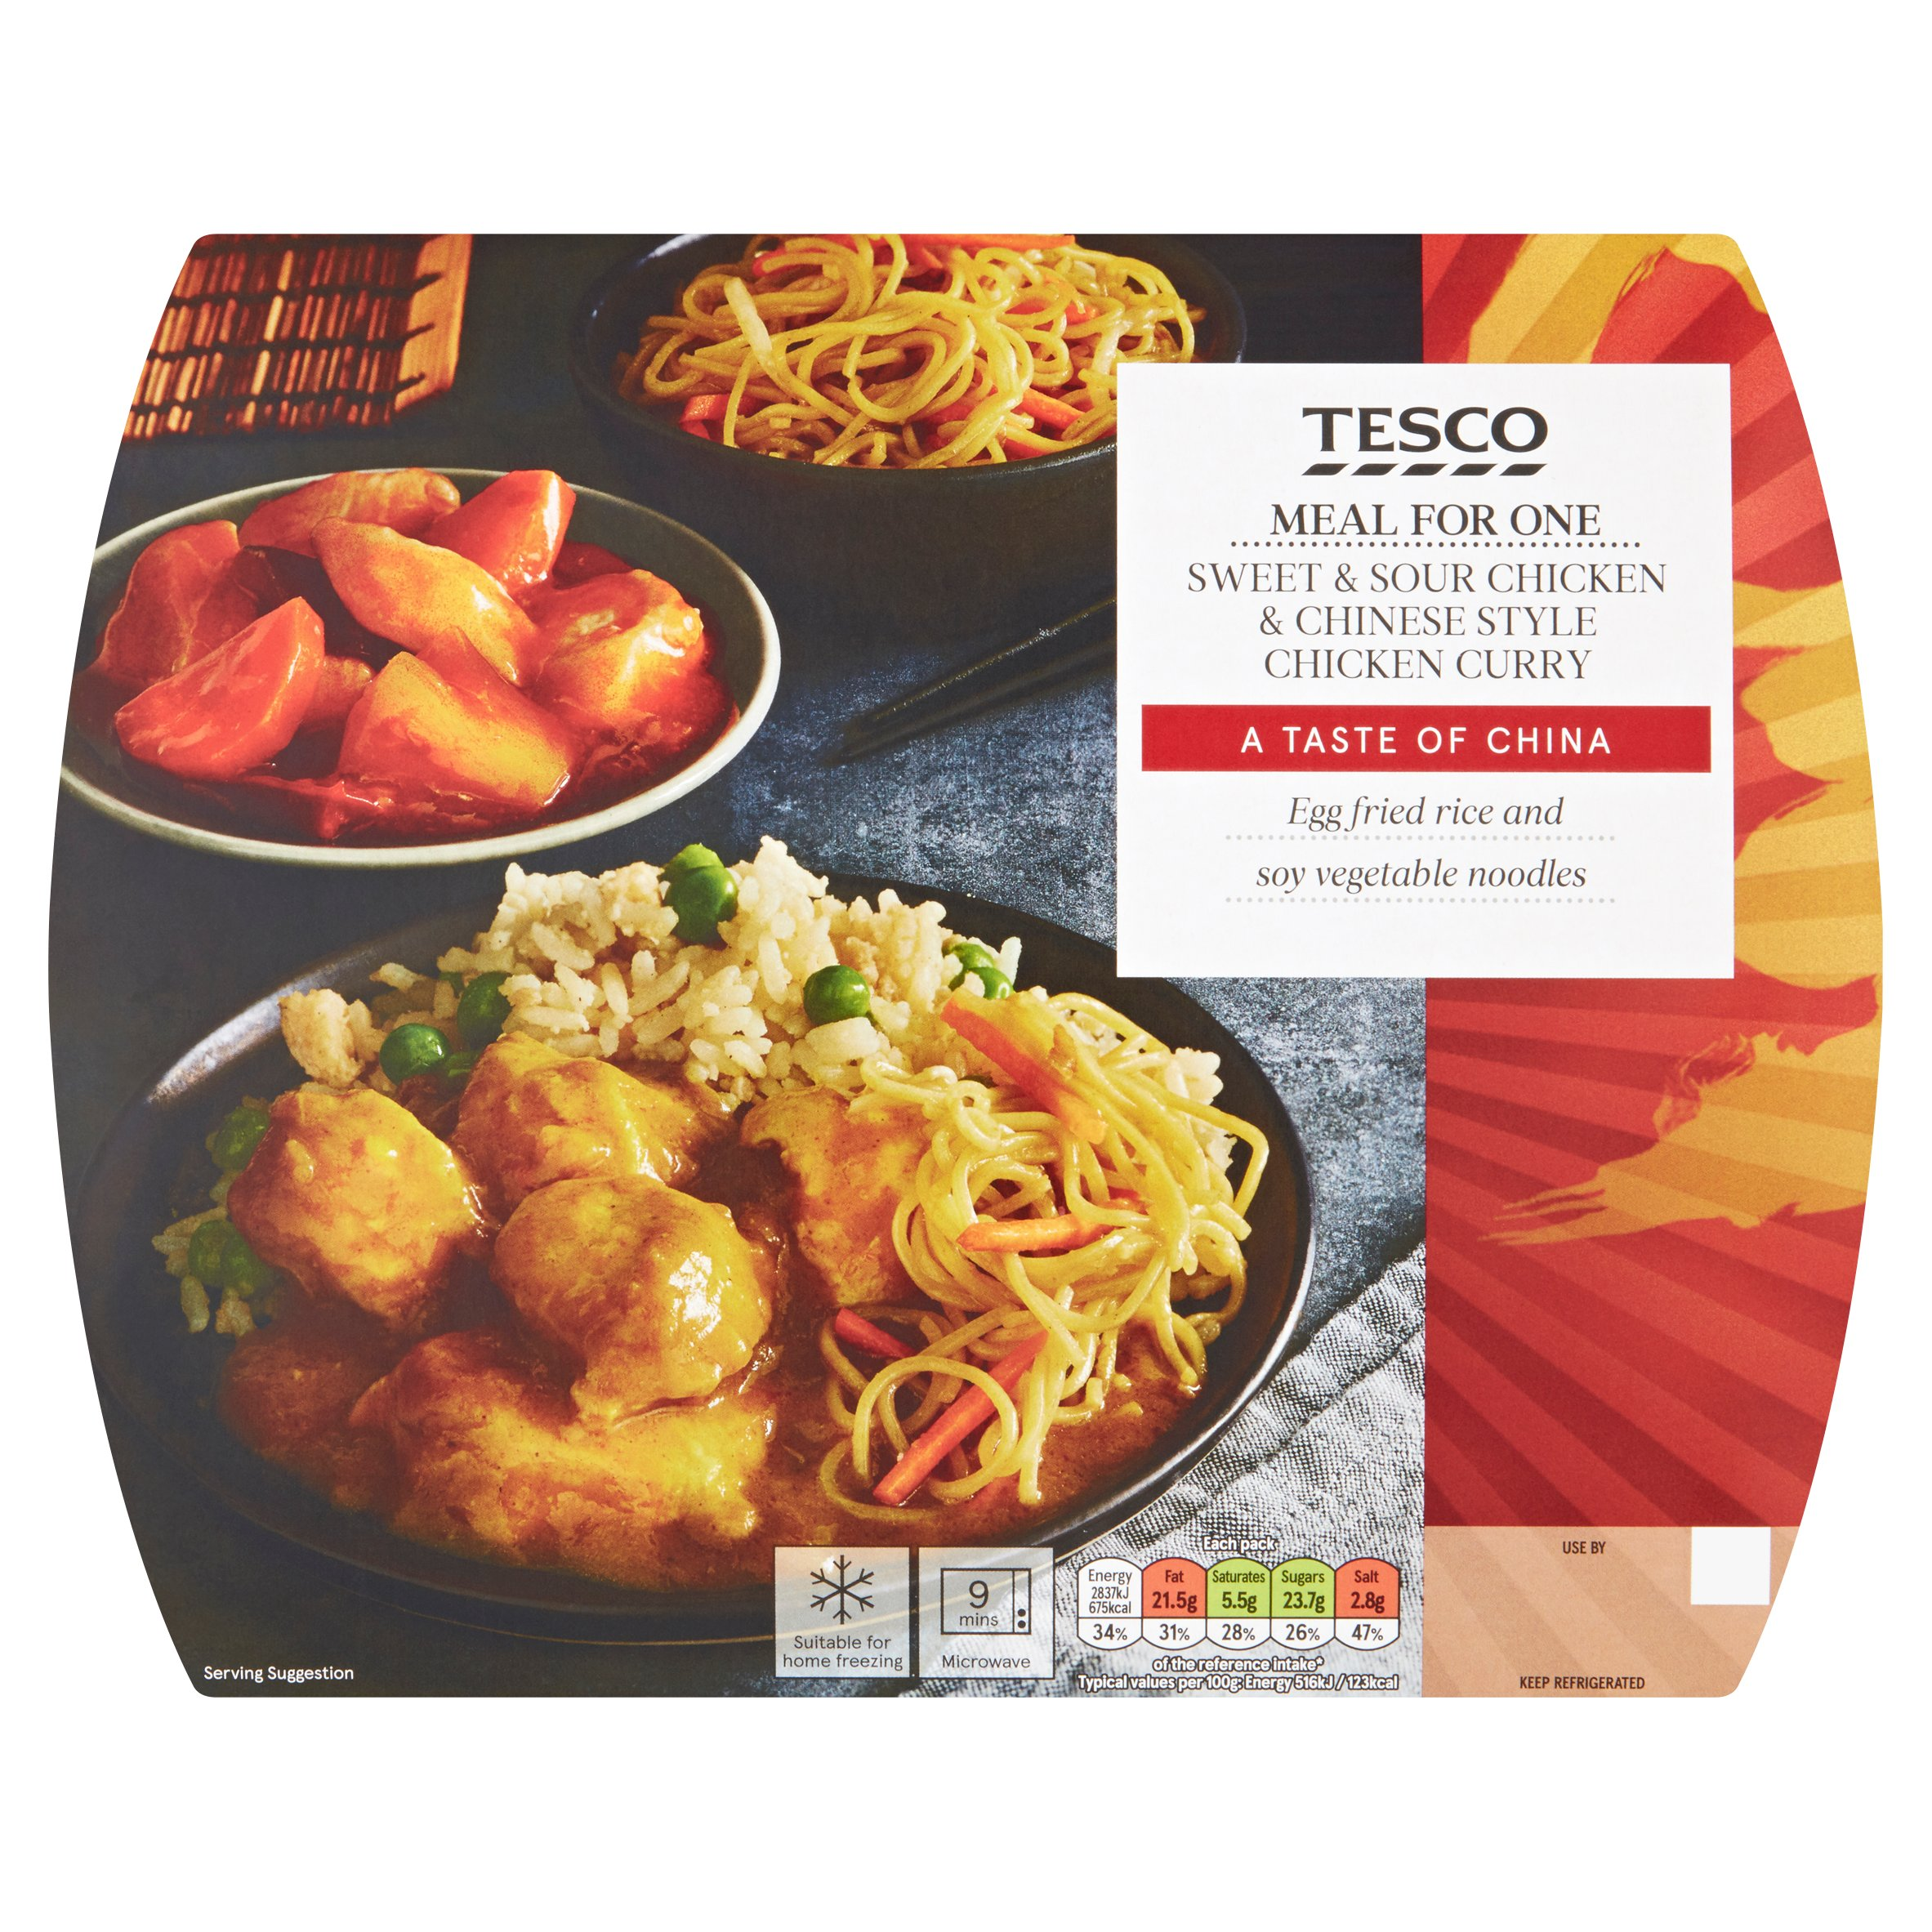 Tesco Sweet & Sour Chicken Chinese Style Chicken Curry 550G